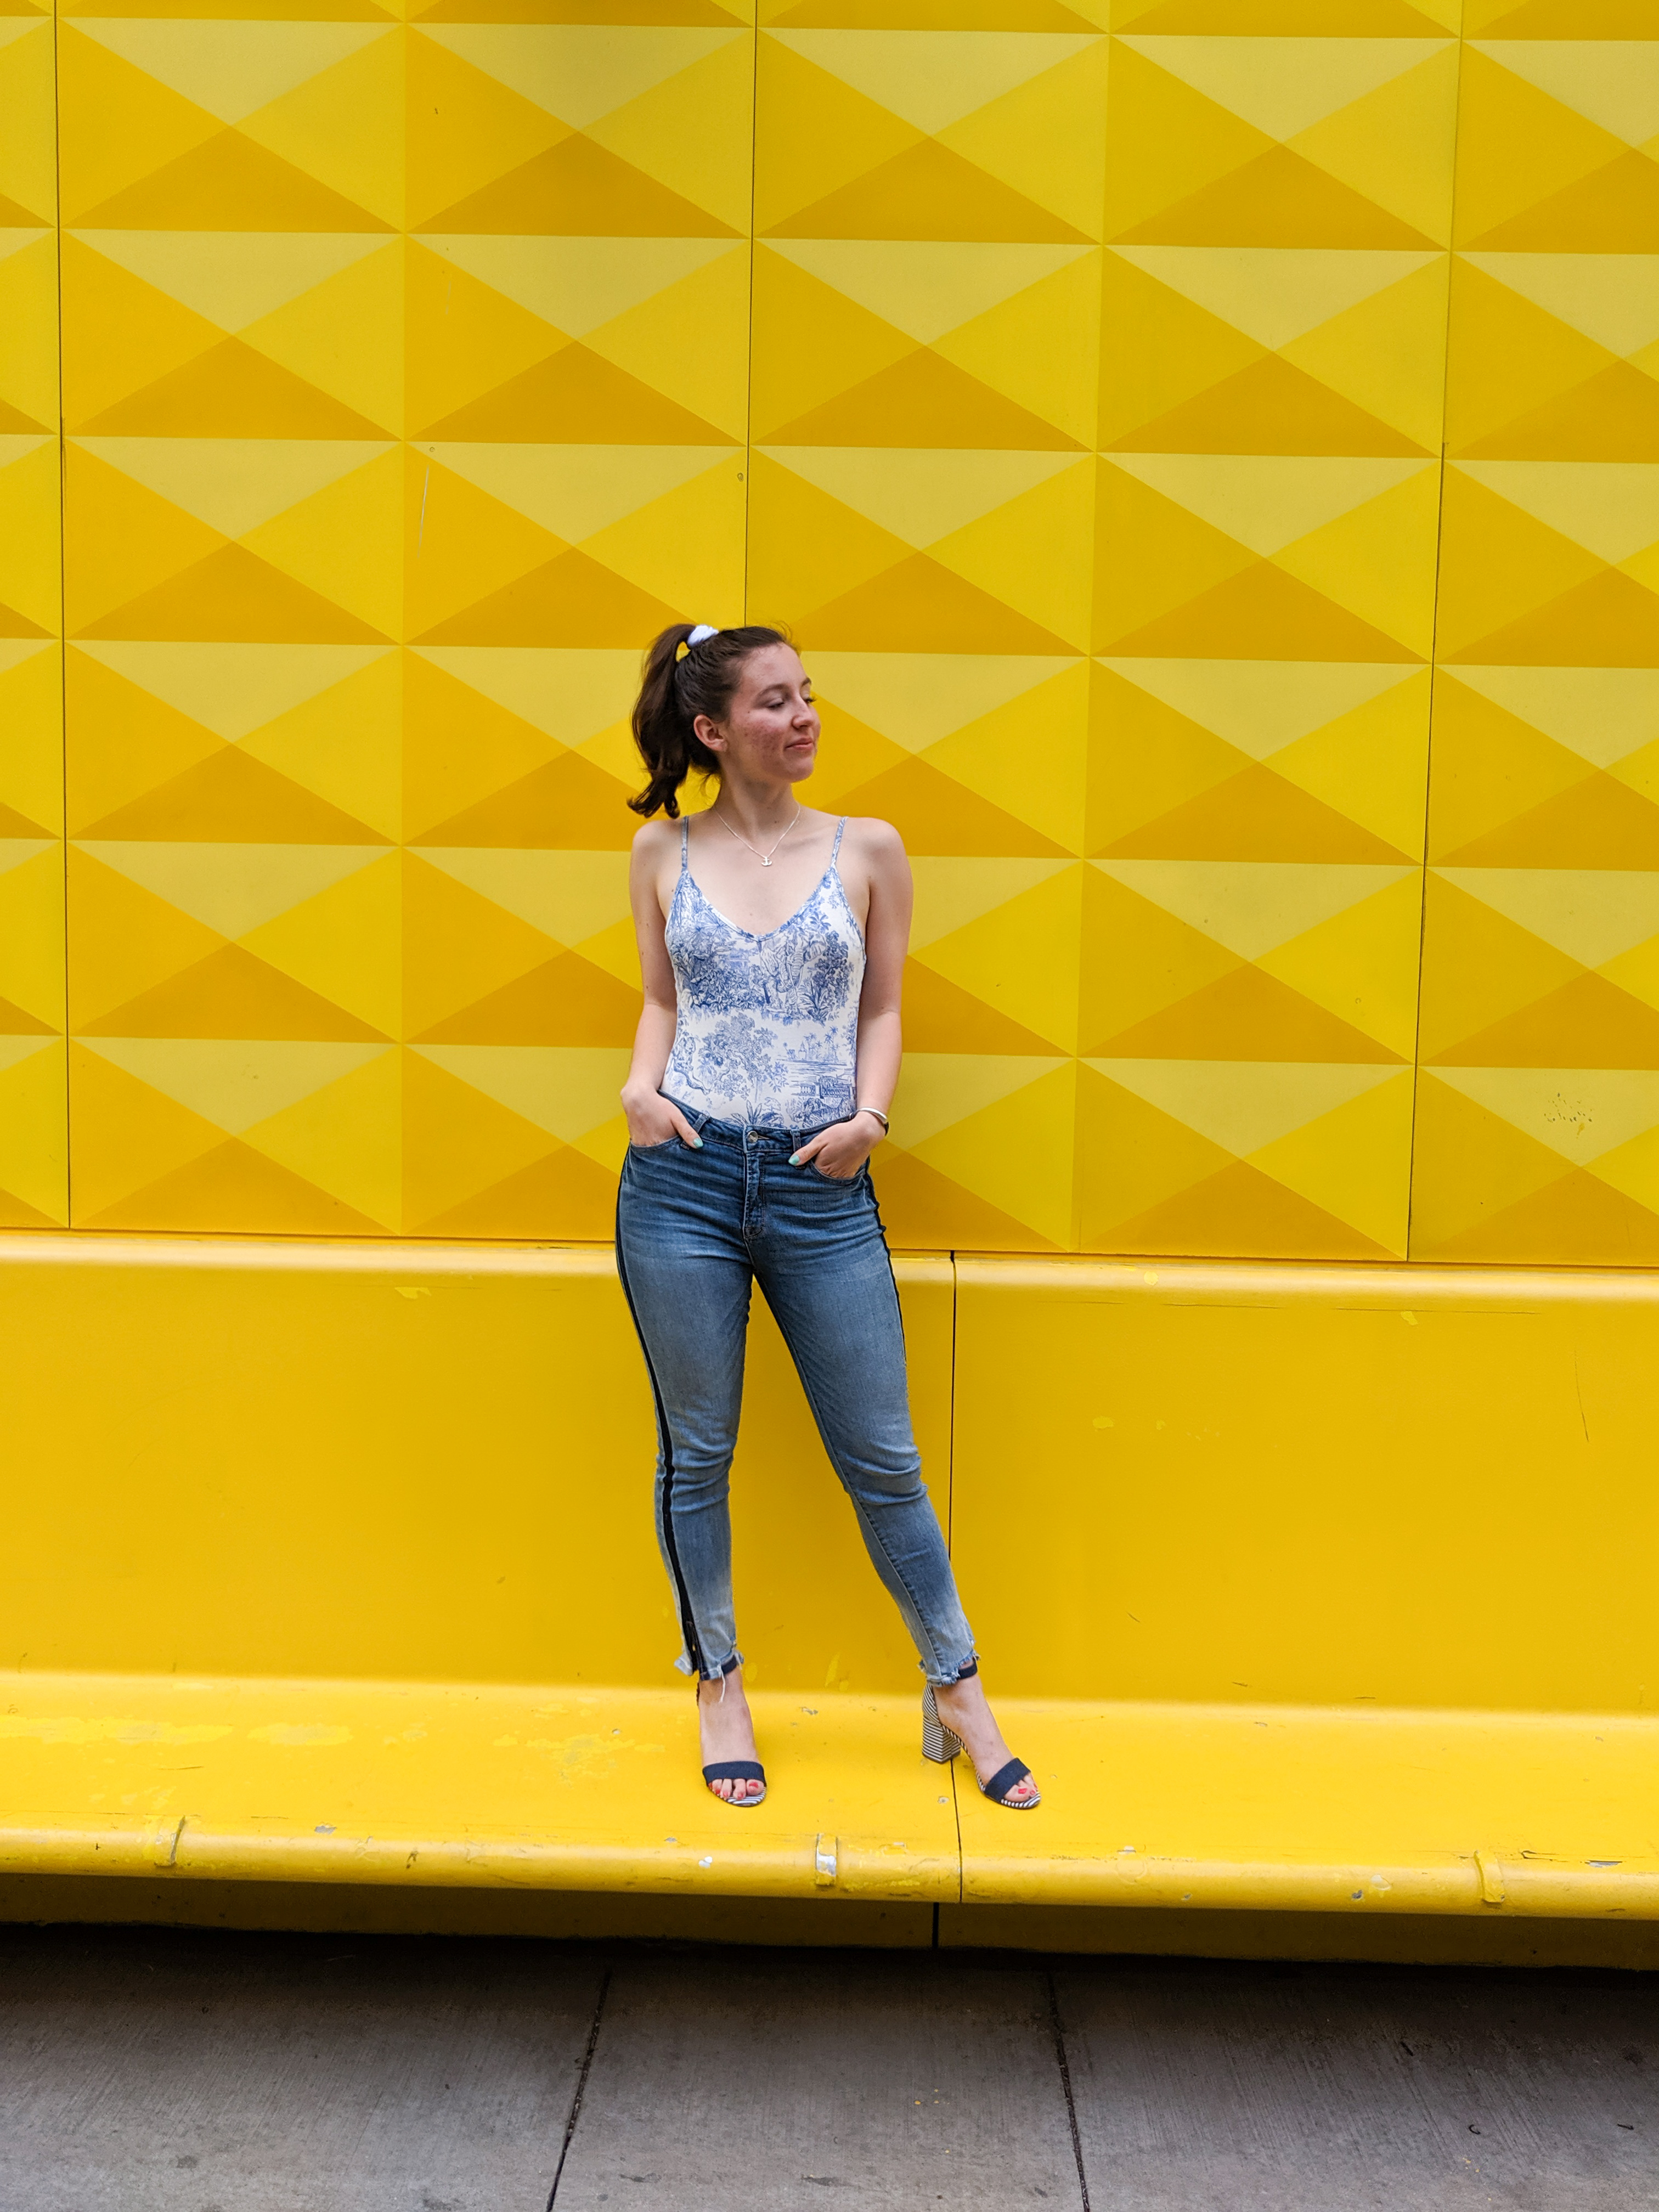 skinny jeans, bodysuit, yellow wall, downtown Denver